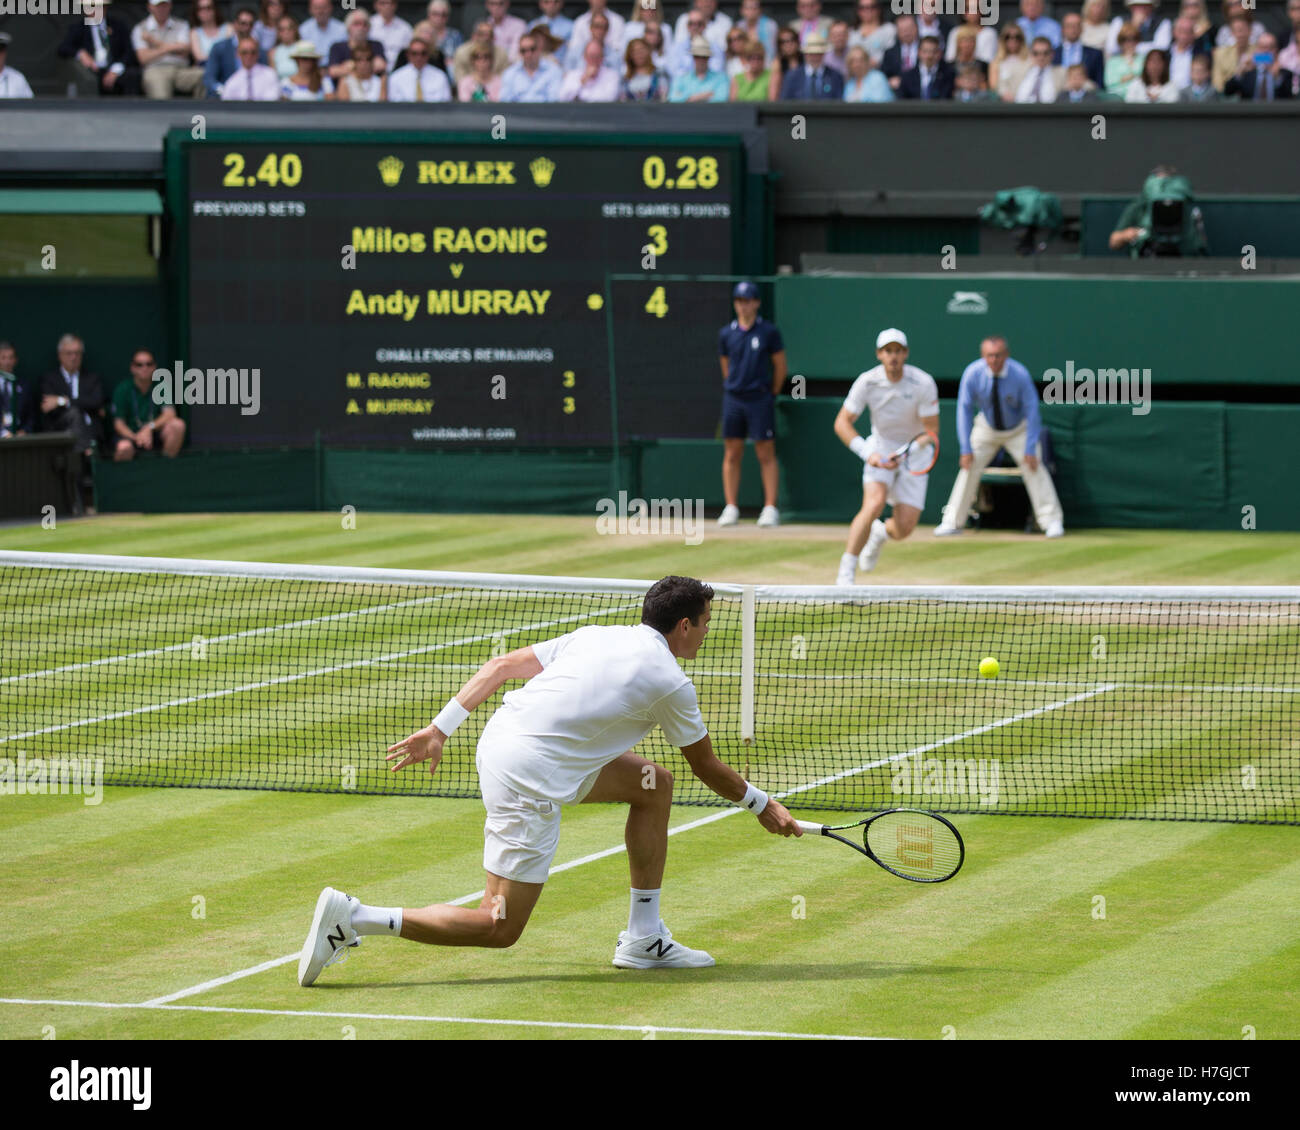 Milos Raonic (CAN) vs. Andy Murray (GBR) , action at Wimbledon 2016 final. Stock Photo